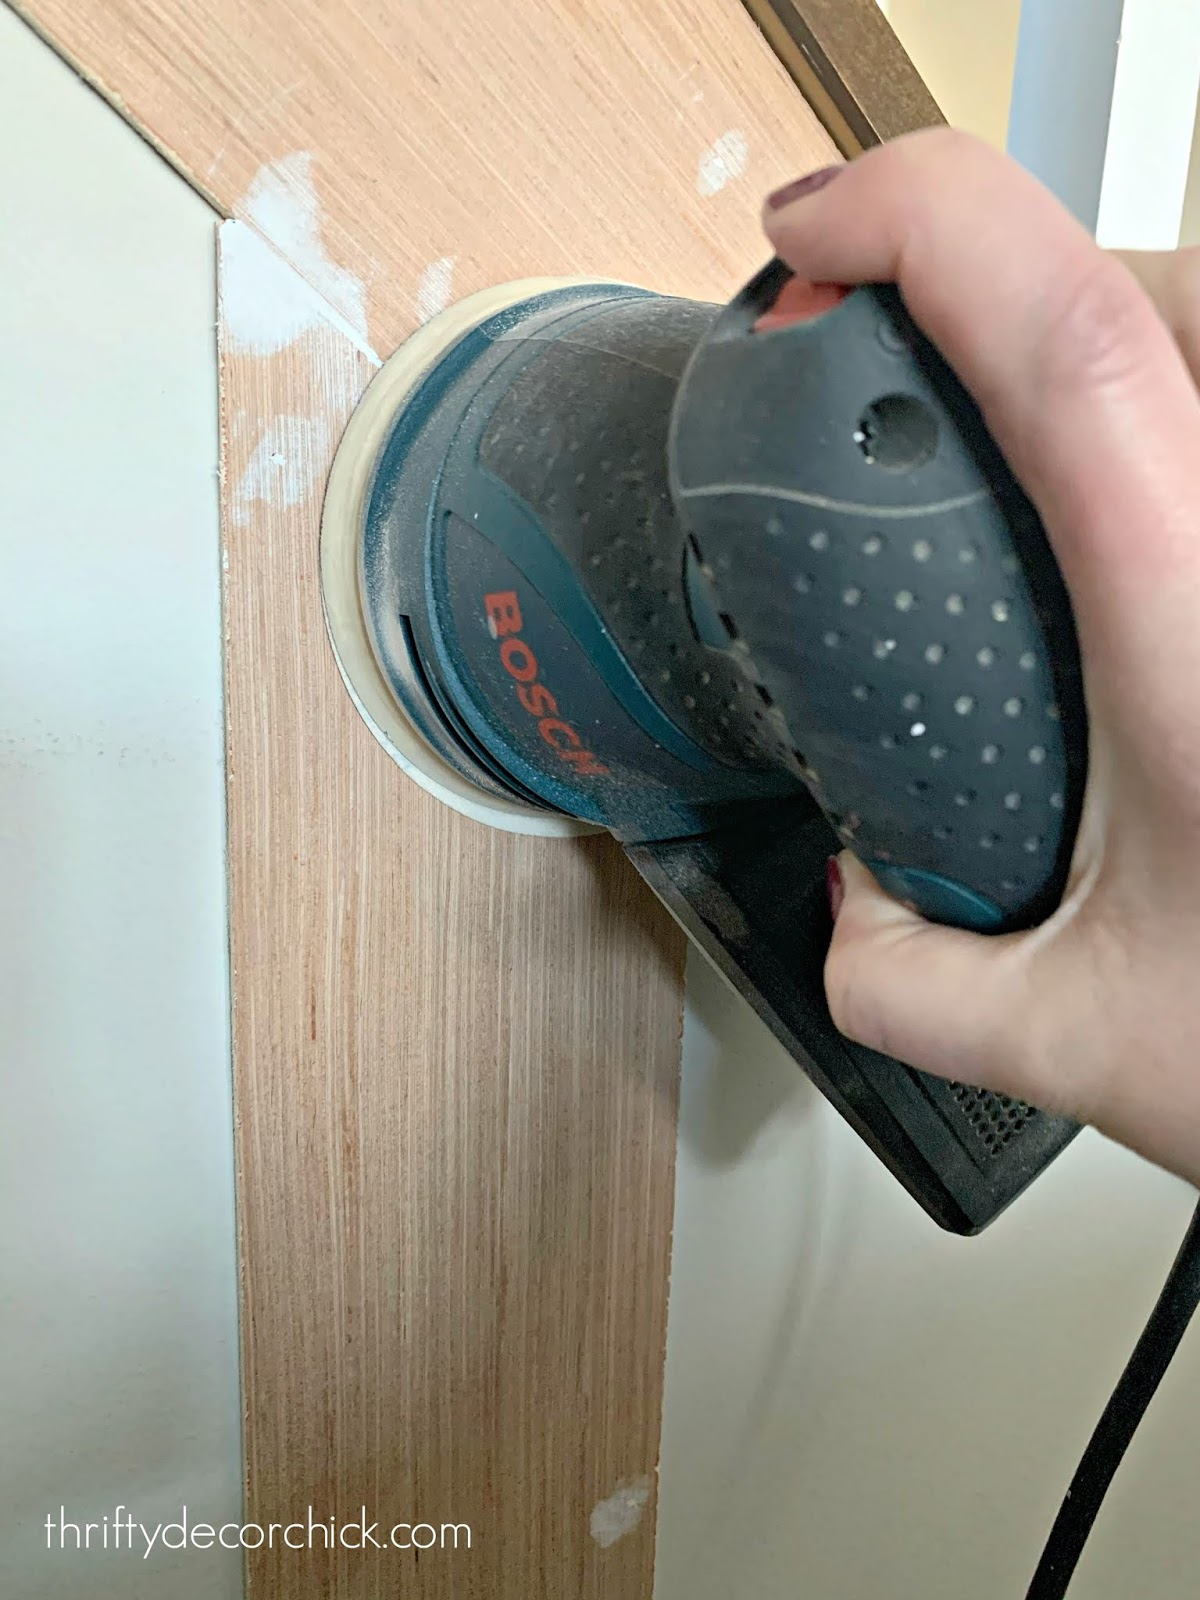 Best sander for installing trimwork